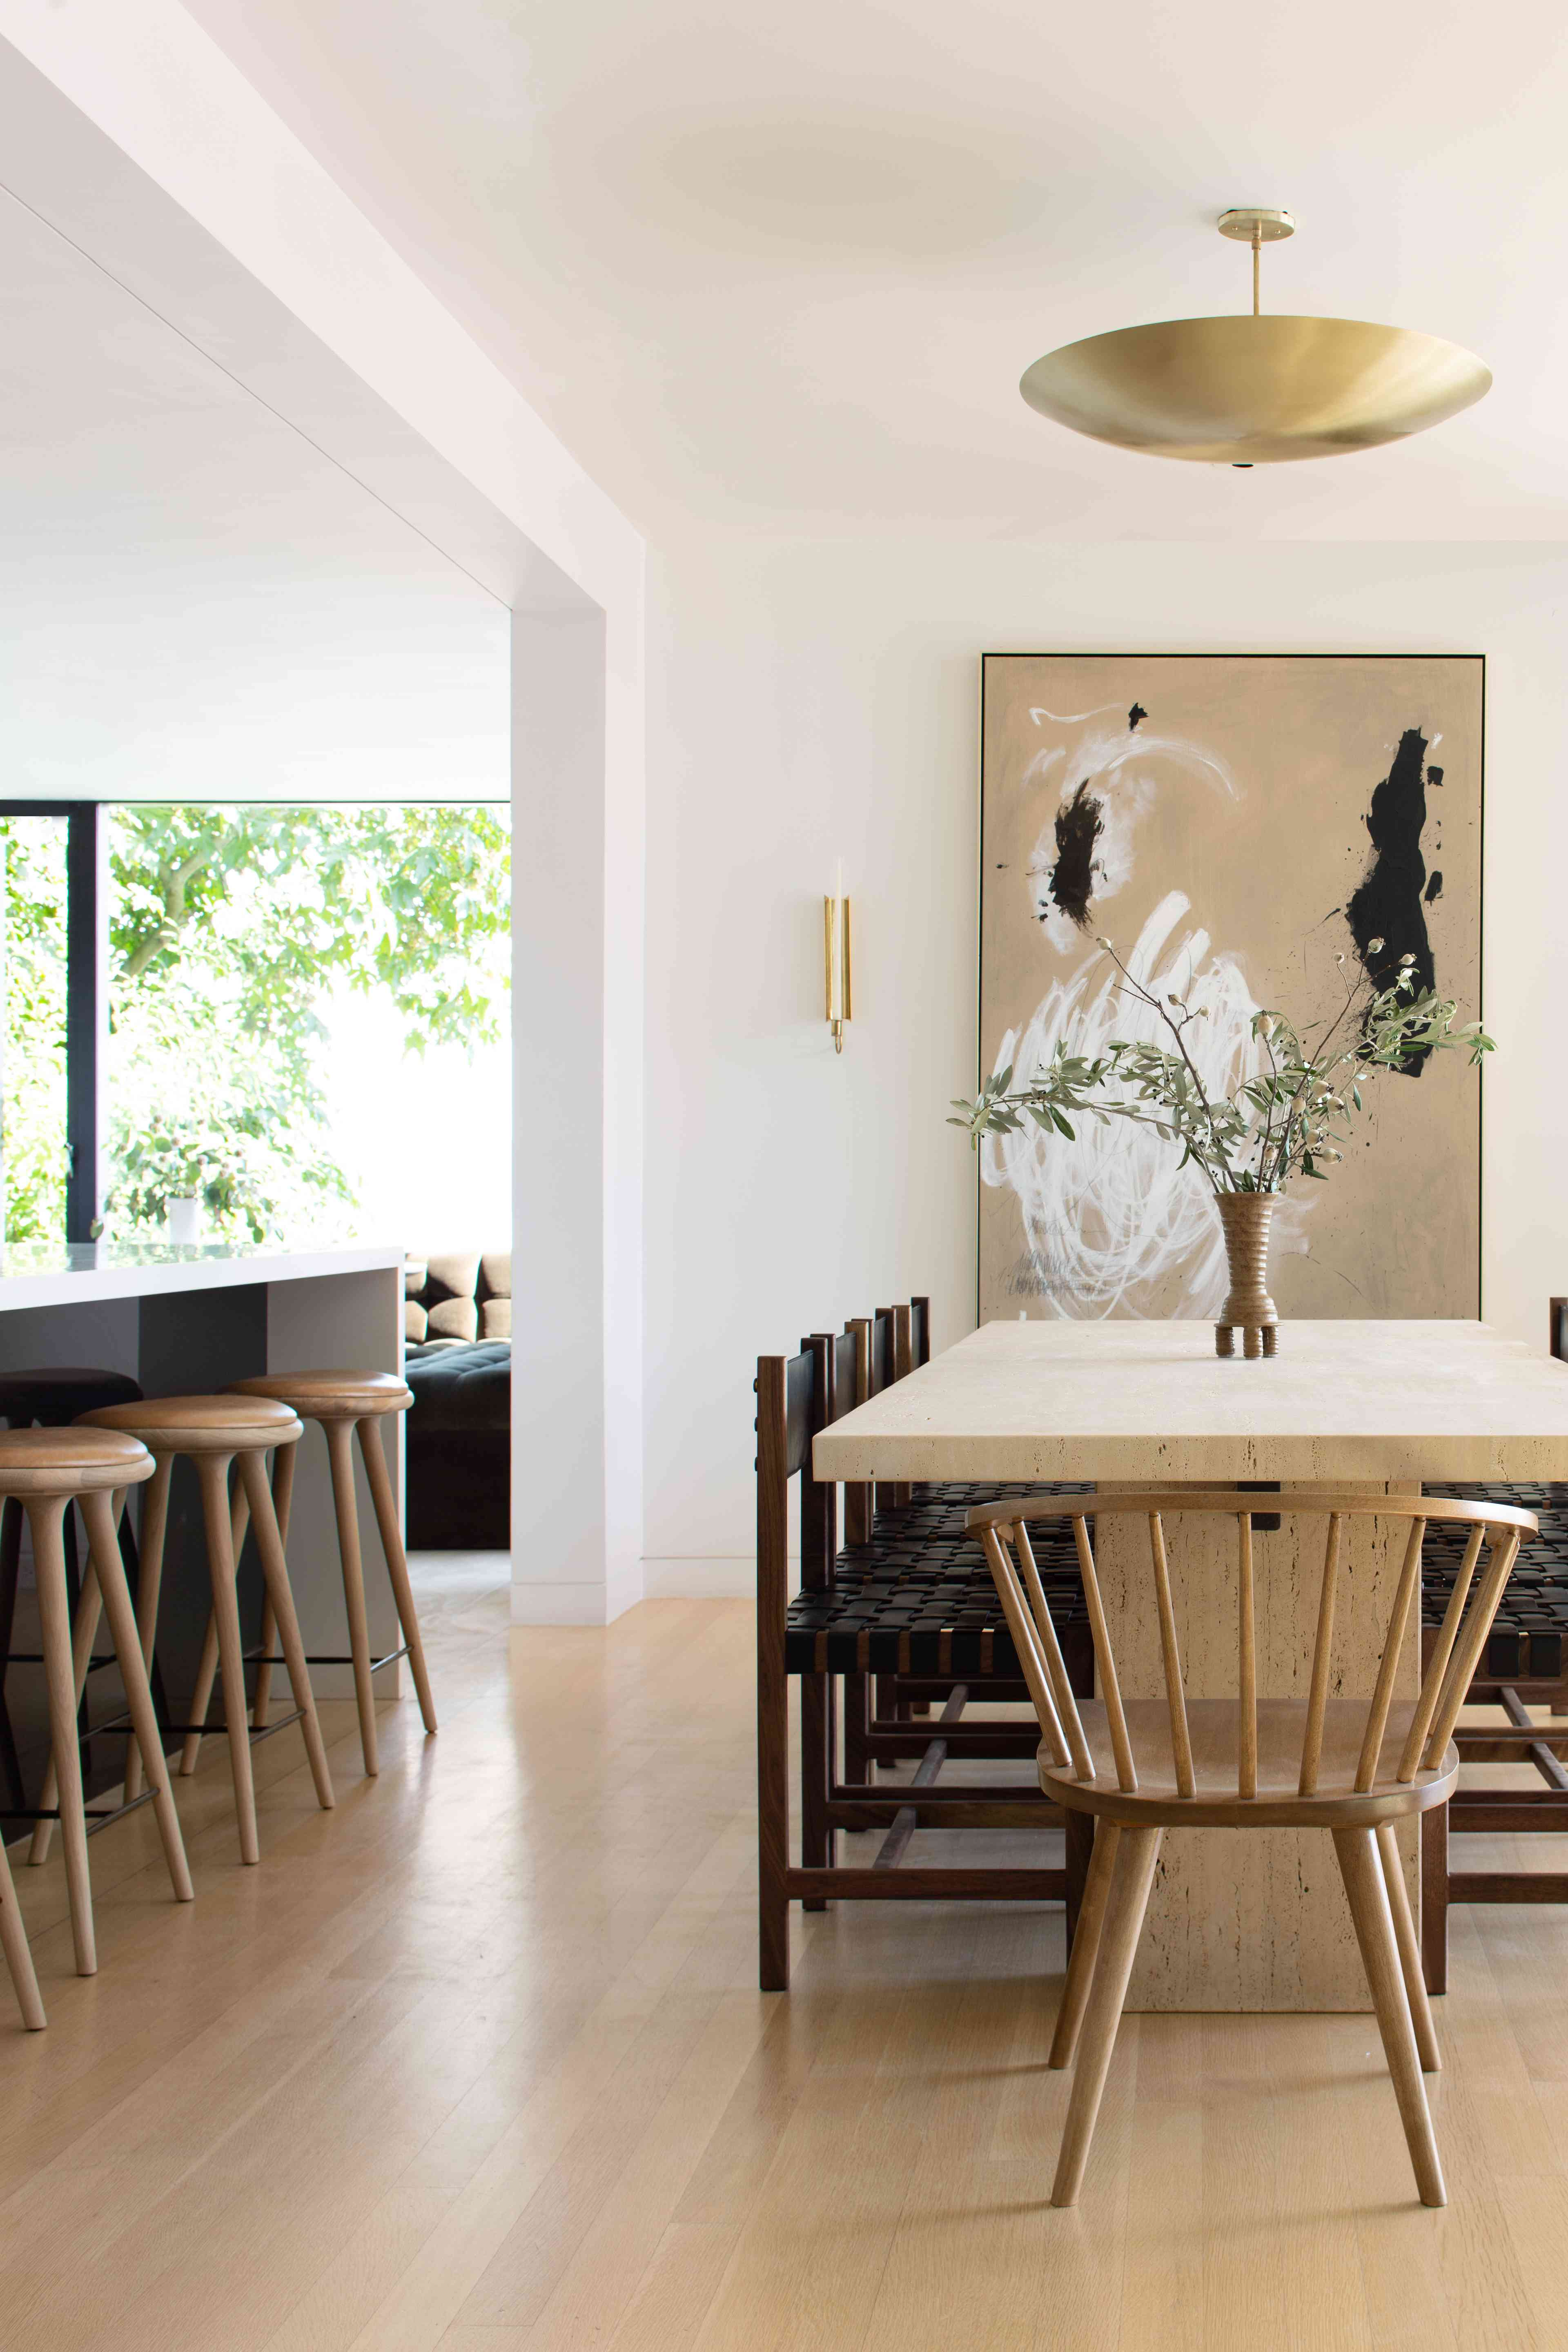 Bright modern dining area with gold pendant light.